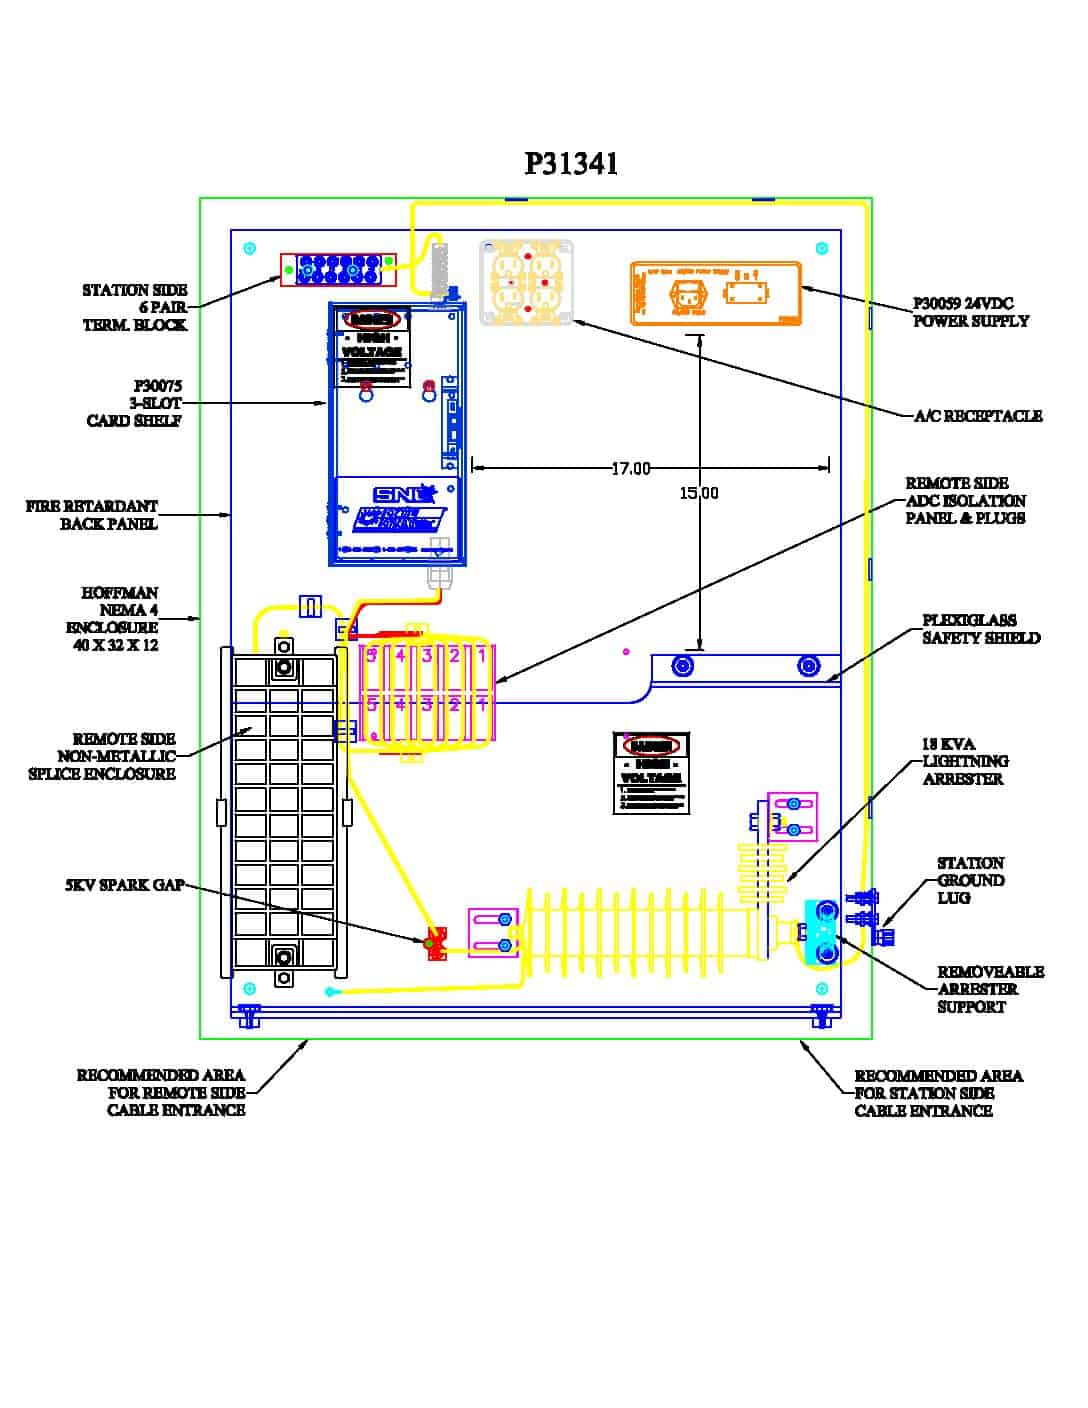 P31341 Turnkey Protection Packages - 3 slot PDF thumbnail